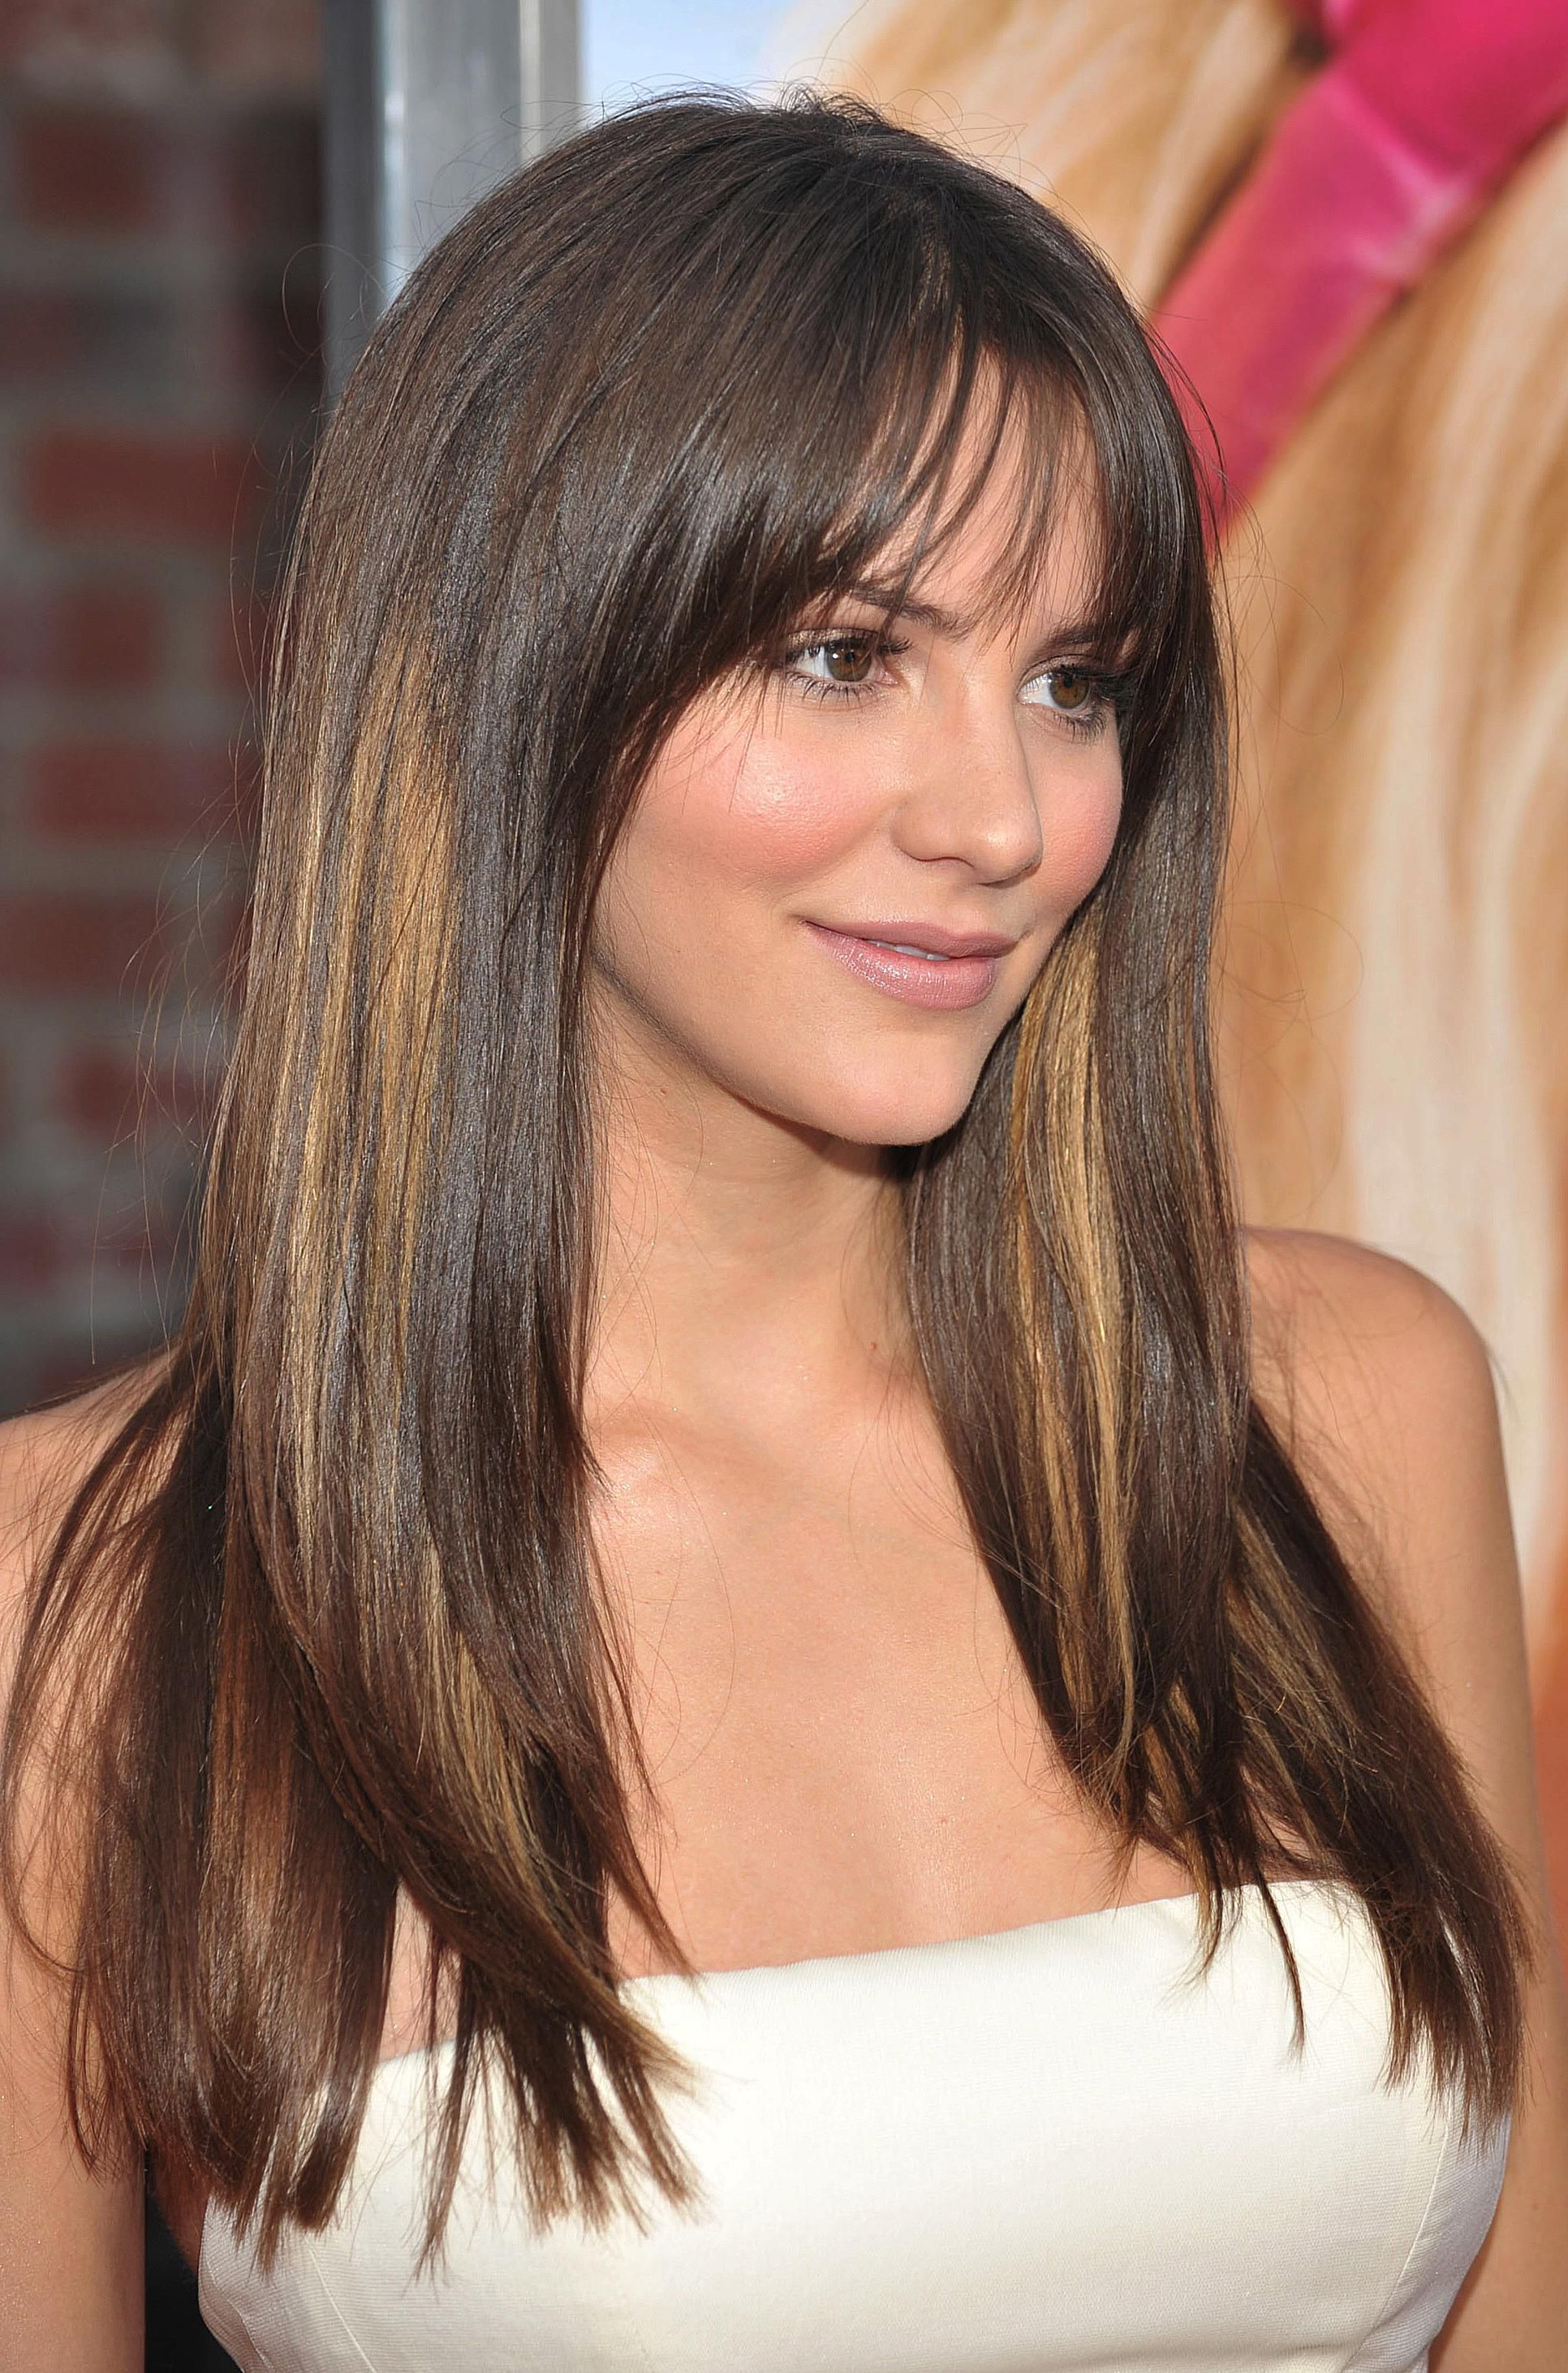 35 Flattering Hairstyles For Round Faces Within Most Current Medium Hairstyles With Side Bangs For Round Faces (View 11 of 20)